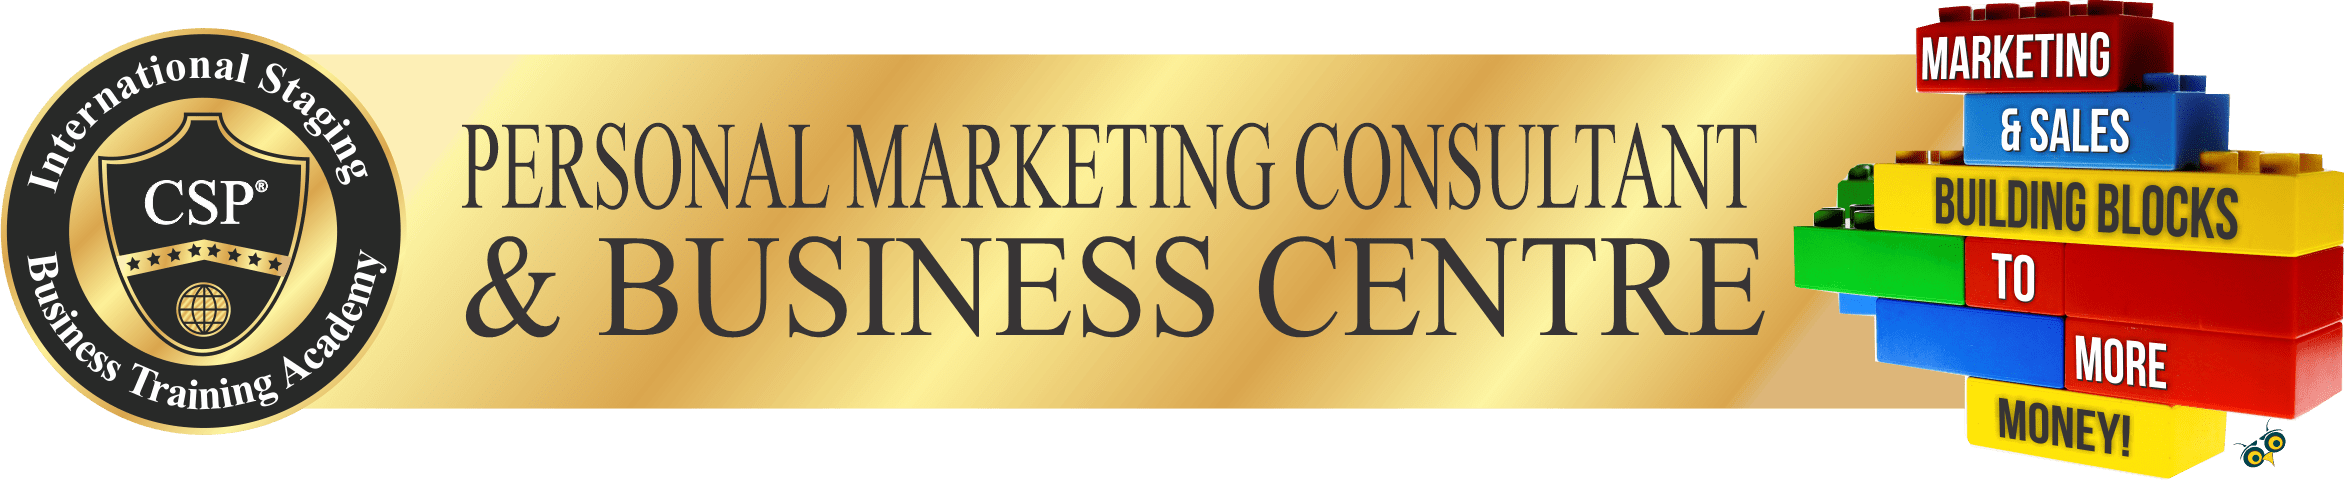 CSP Marketing & Business Centre